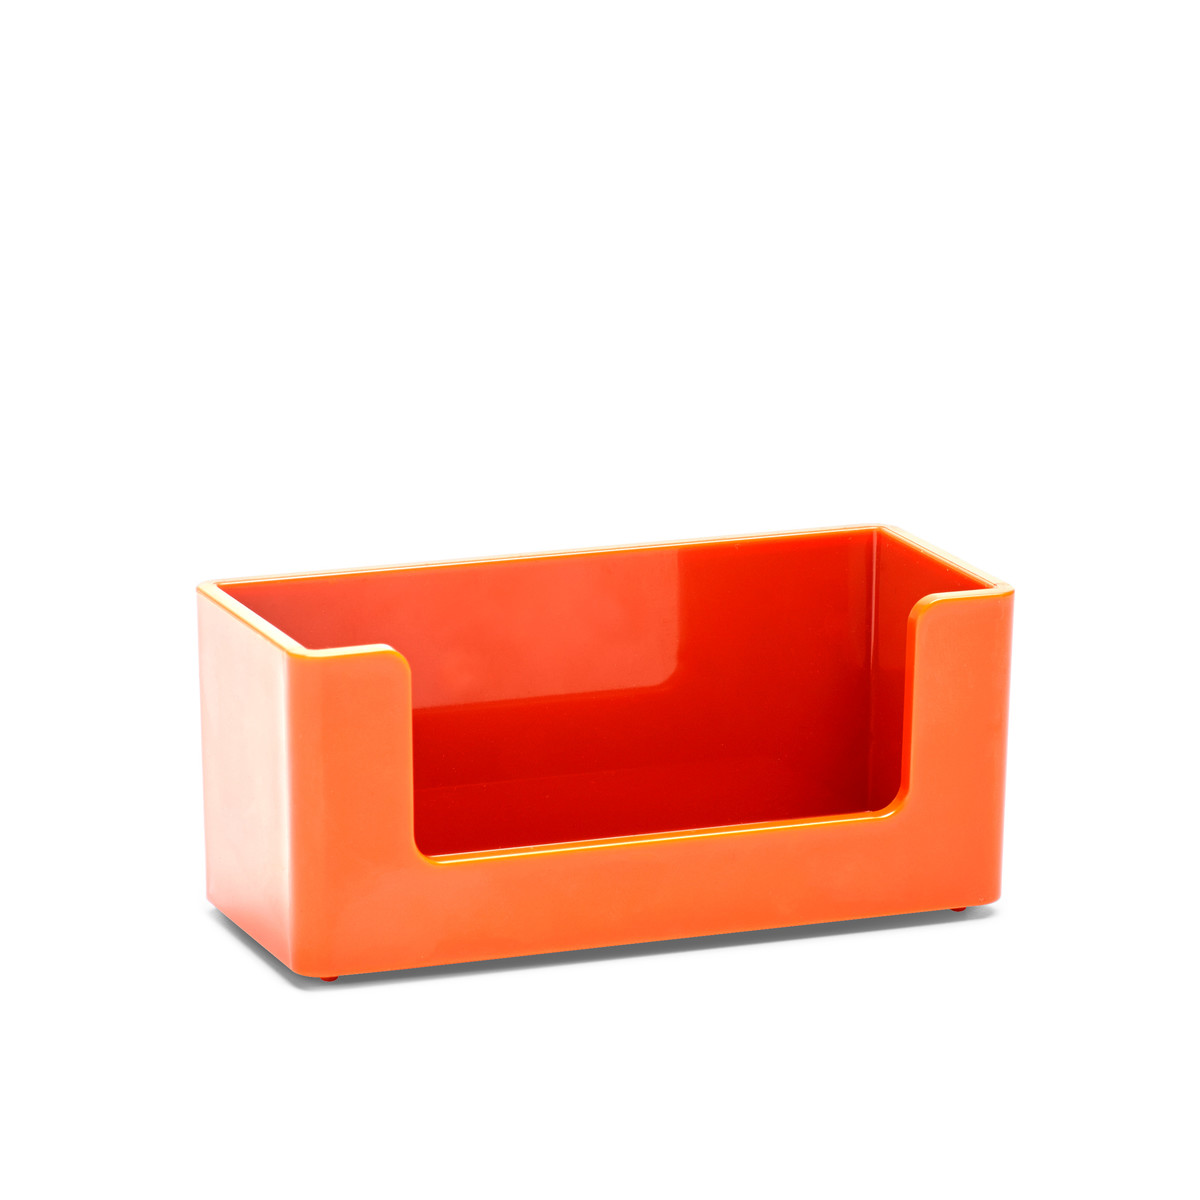 Orange Business Card Holder| Desk Accessories| Poppin